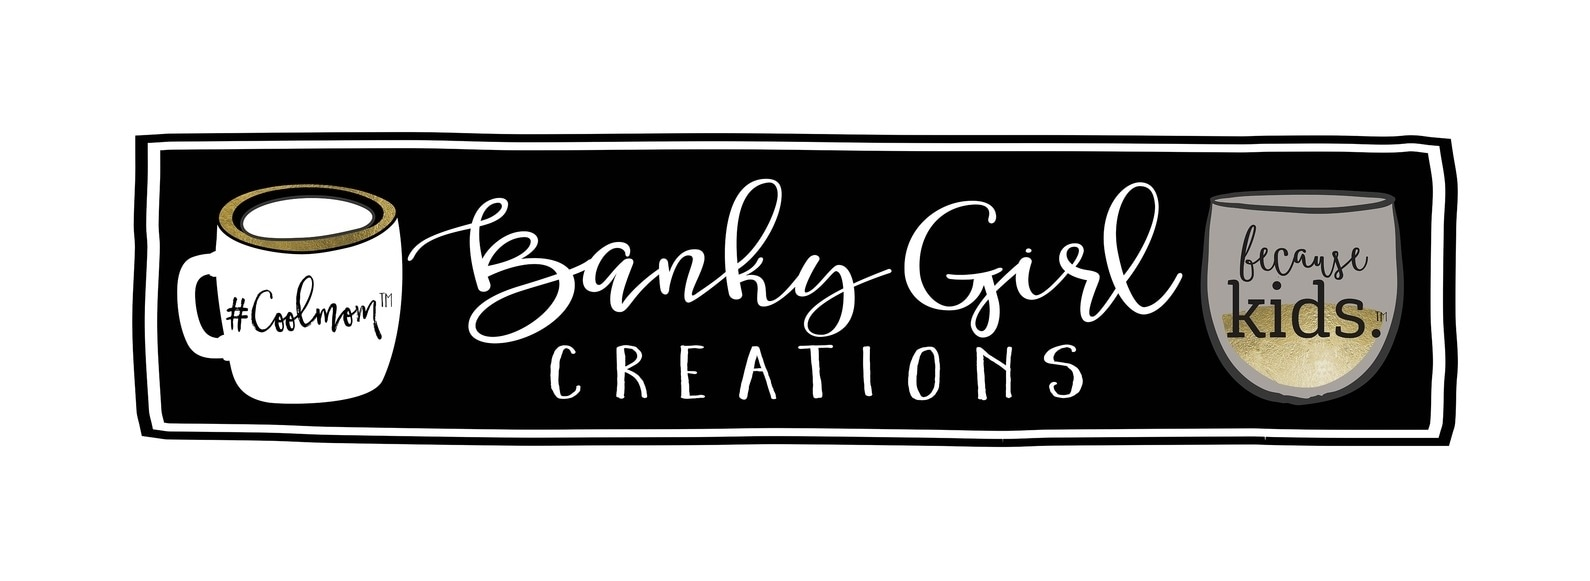 BankyGirlCreations promo codes